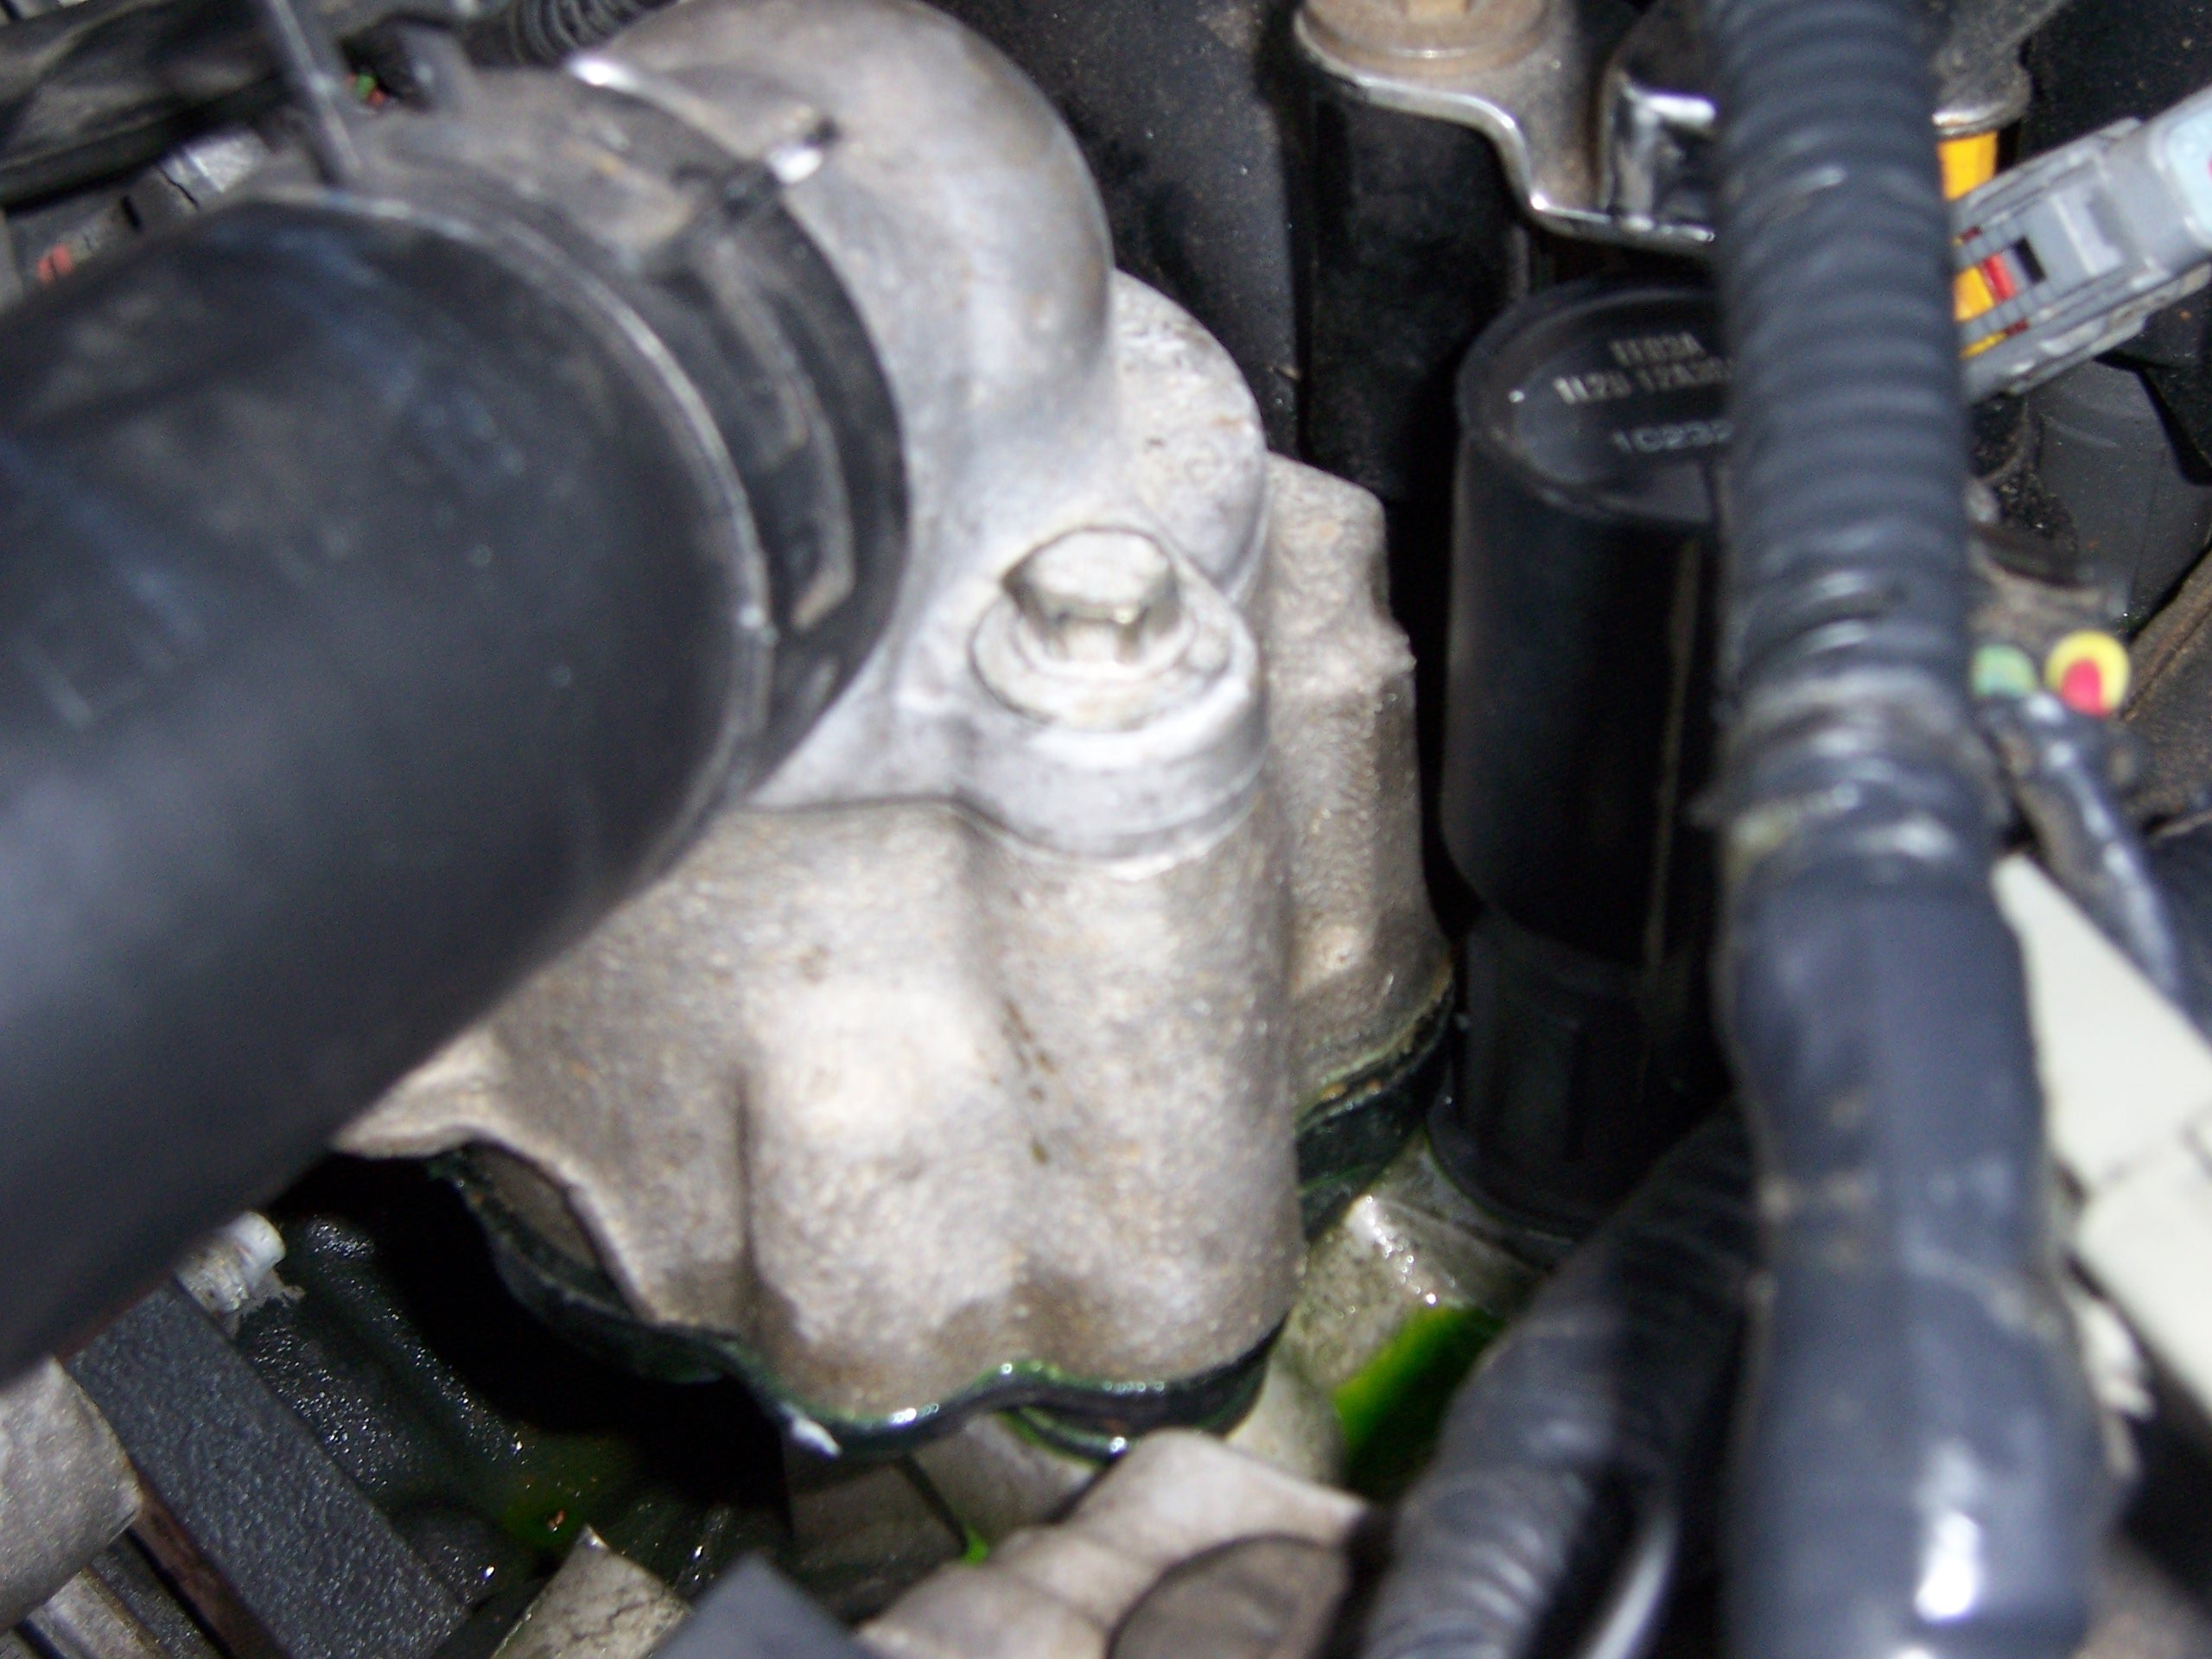 3 4 L Engine Coolant Flow Diagram Coolant Leak On My Buddies 2002 Mustang Ford Mustang Forum